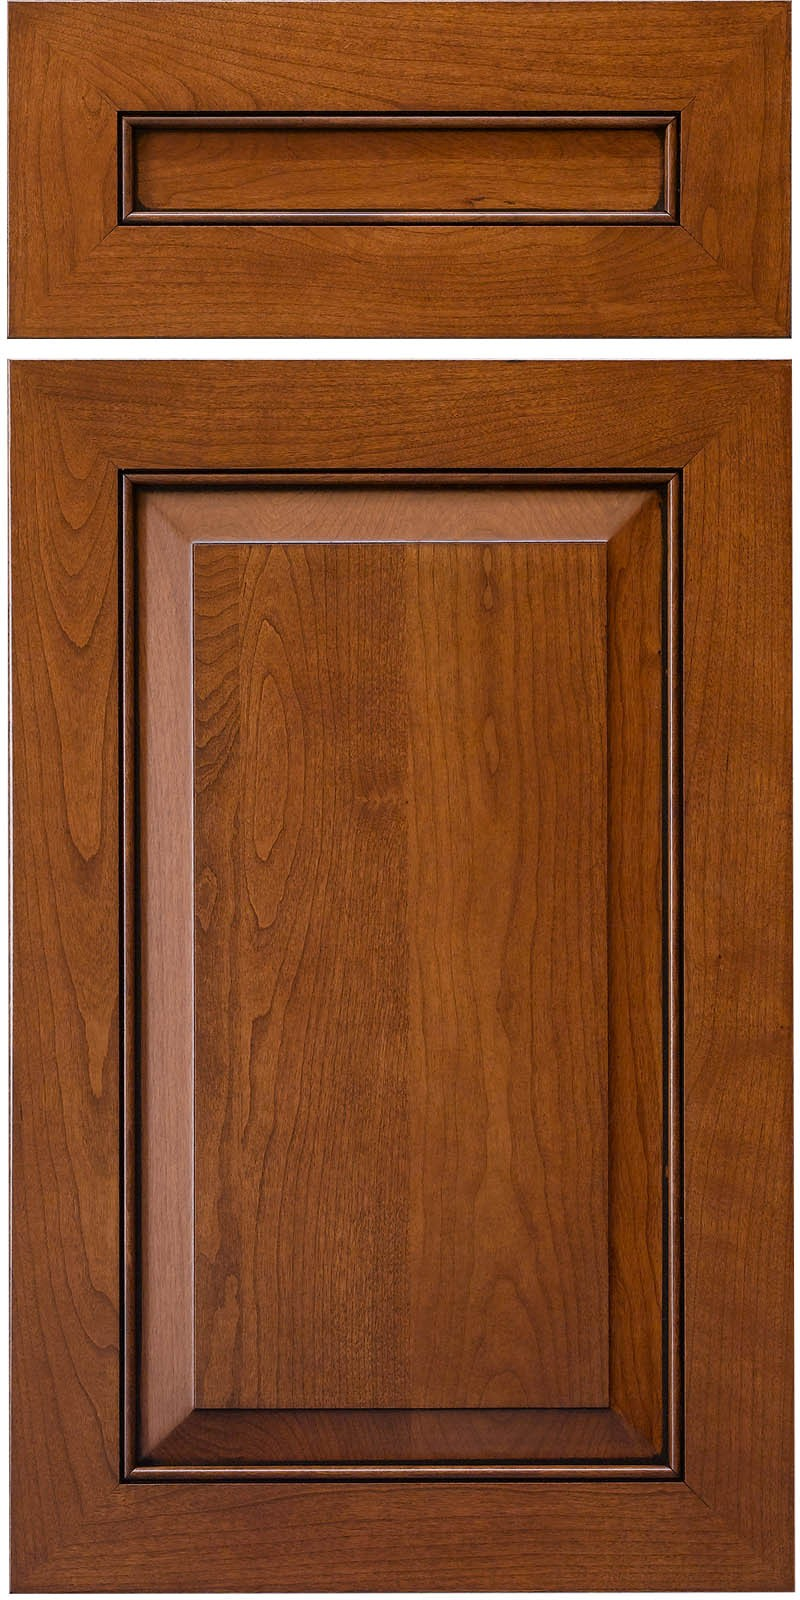 Kitchen Cabinet Doors Fronts Traditional Design Styles Cabinet Doors Drawer Fronts Products